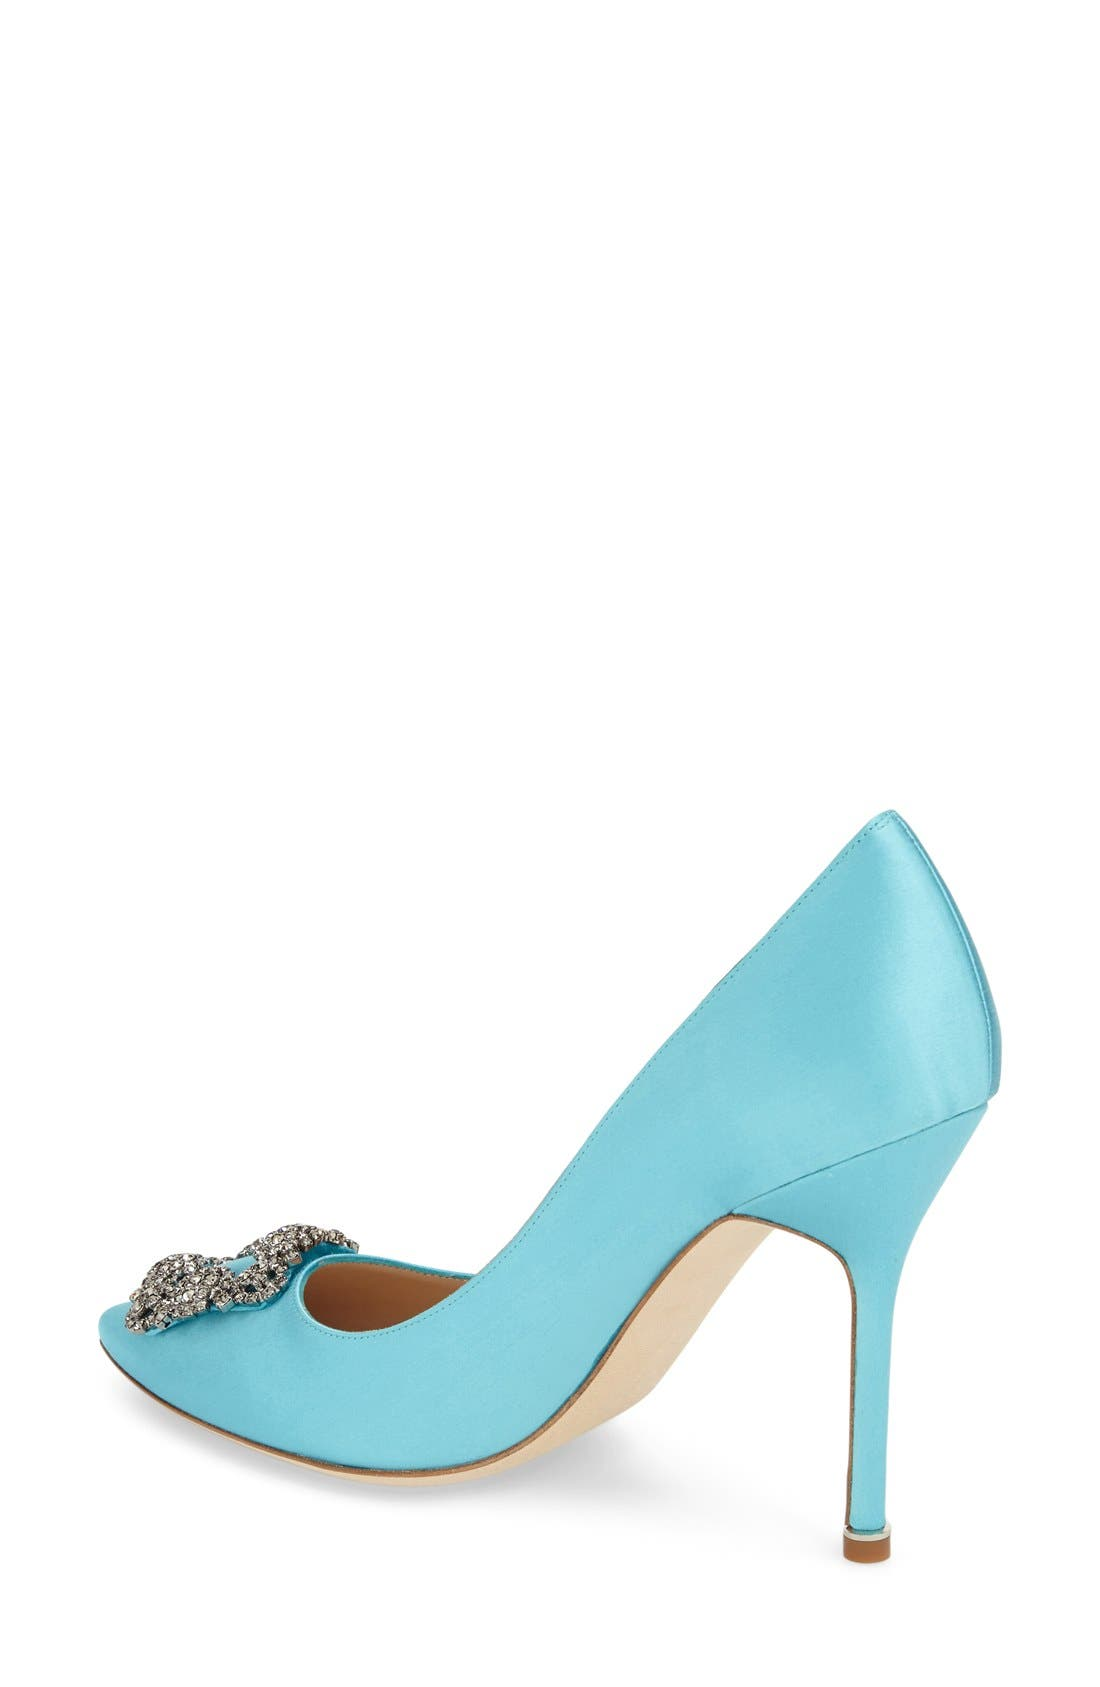 Alternate Image 2  - Manolo Blahnik 'Hangisi' Jewel Pump (Women)